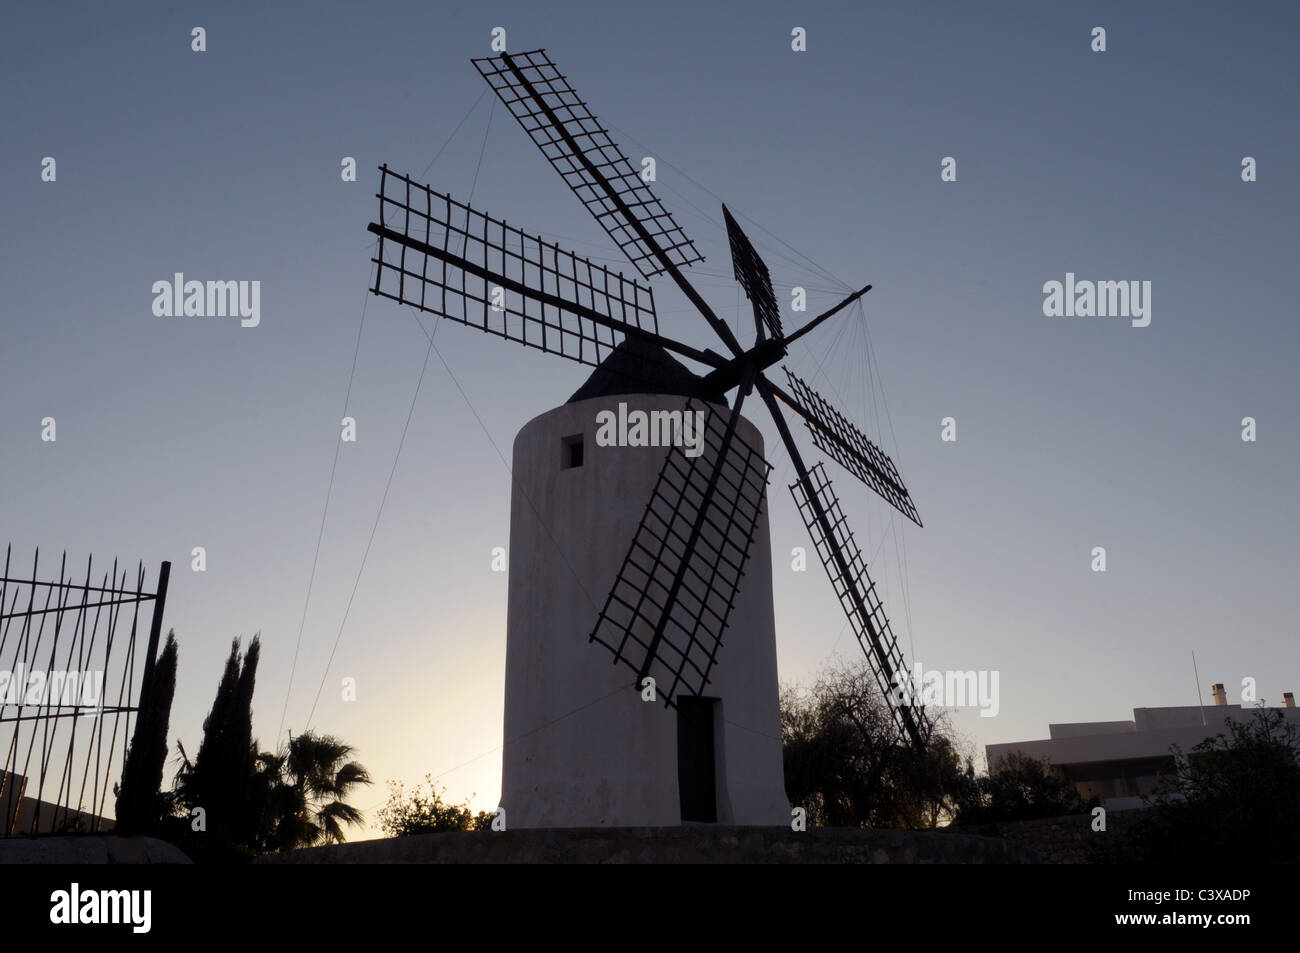 Eivissa Windmill in old town at sunset - Stock Image